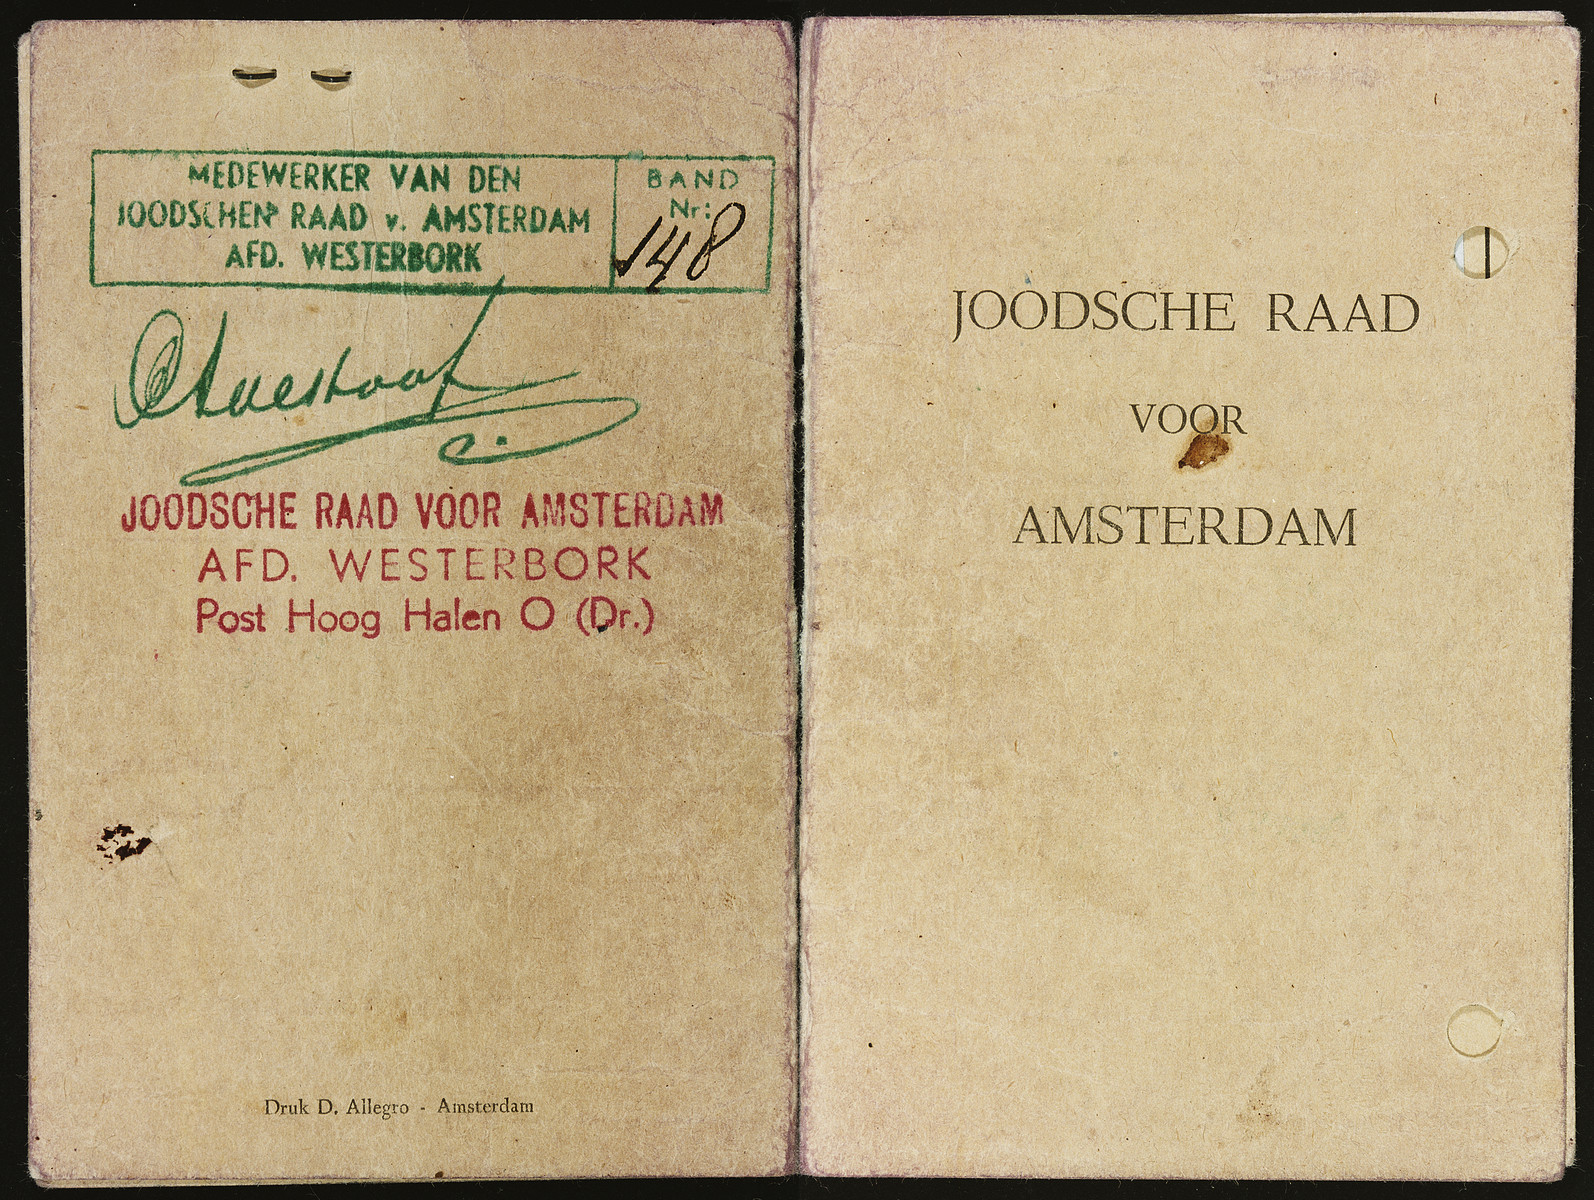 A Joodsche Raad (Jewish Council) identification card issued to Erich Zielenziger.